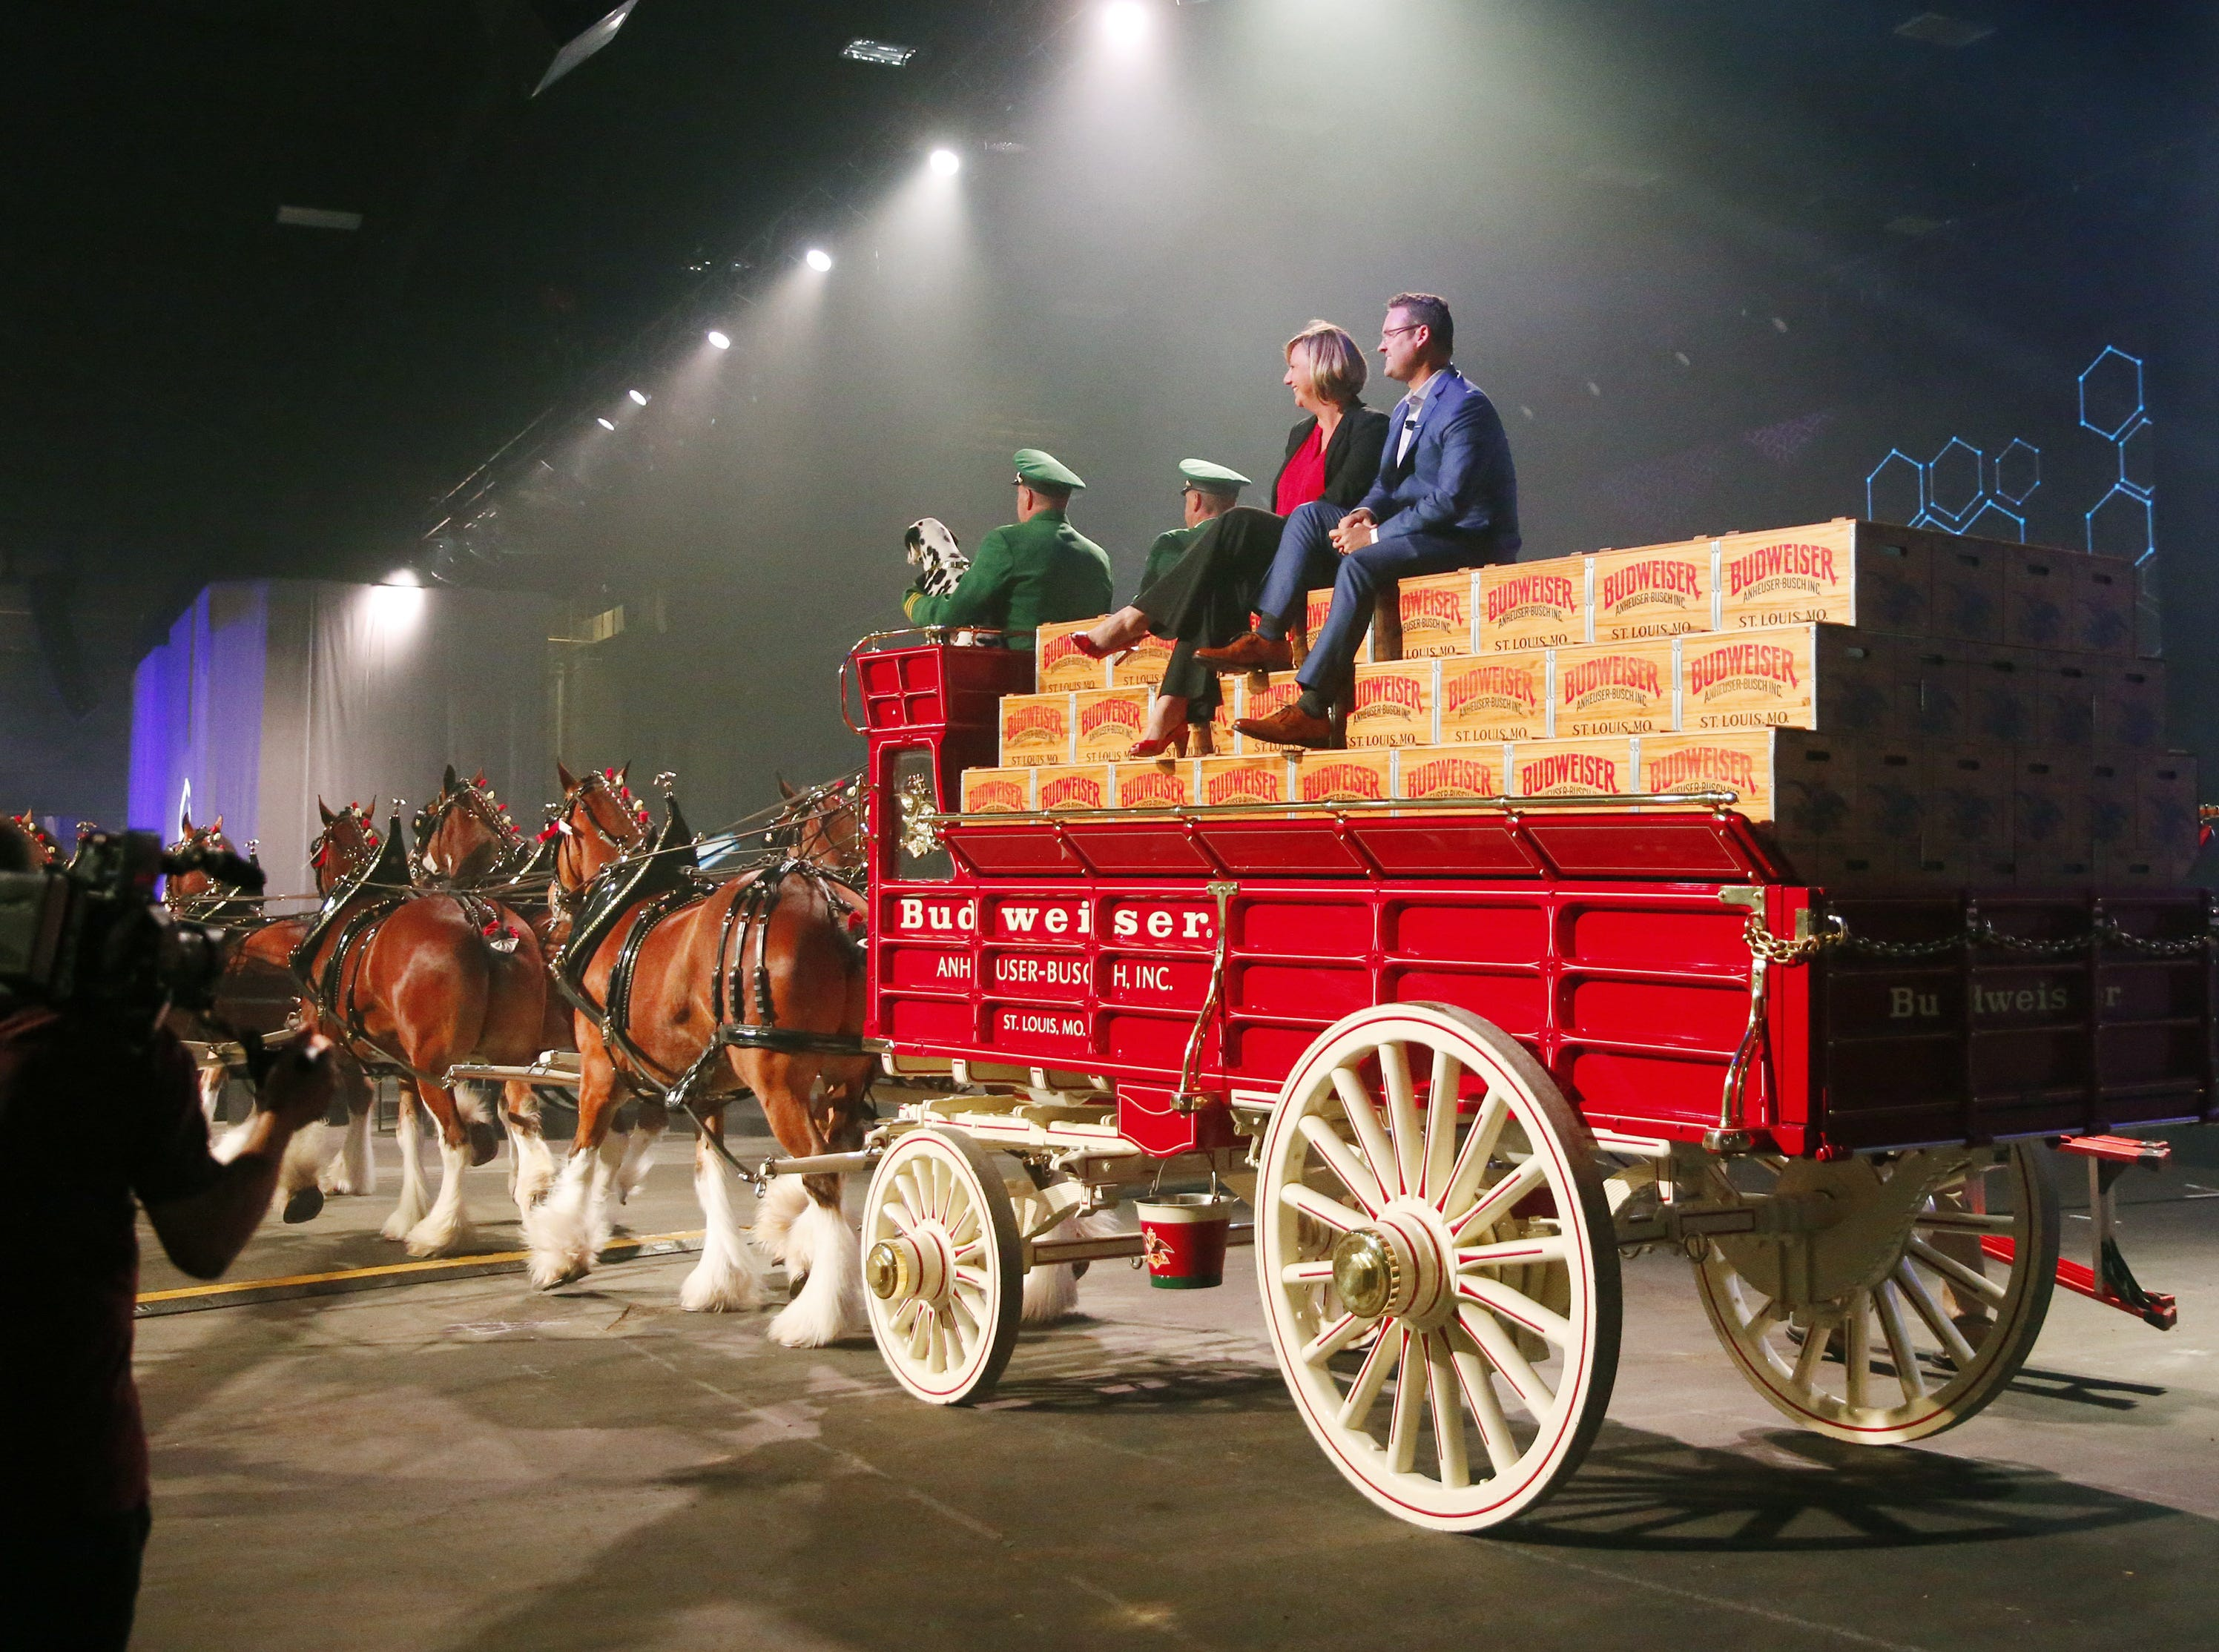 Trevor Milton, Nikola CEO and founder, arrives with the Budweiser Clydesdales at Nikola World 2019 at Westworld in Scottsdale, Ariz. April 16, 2019.